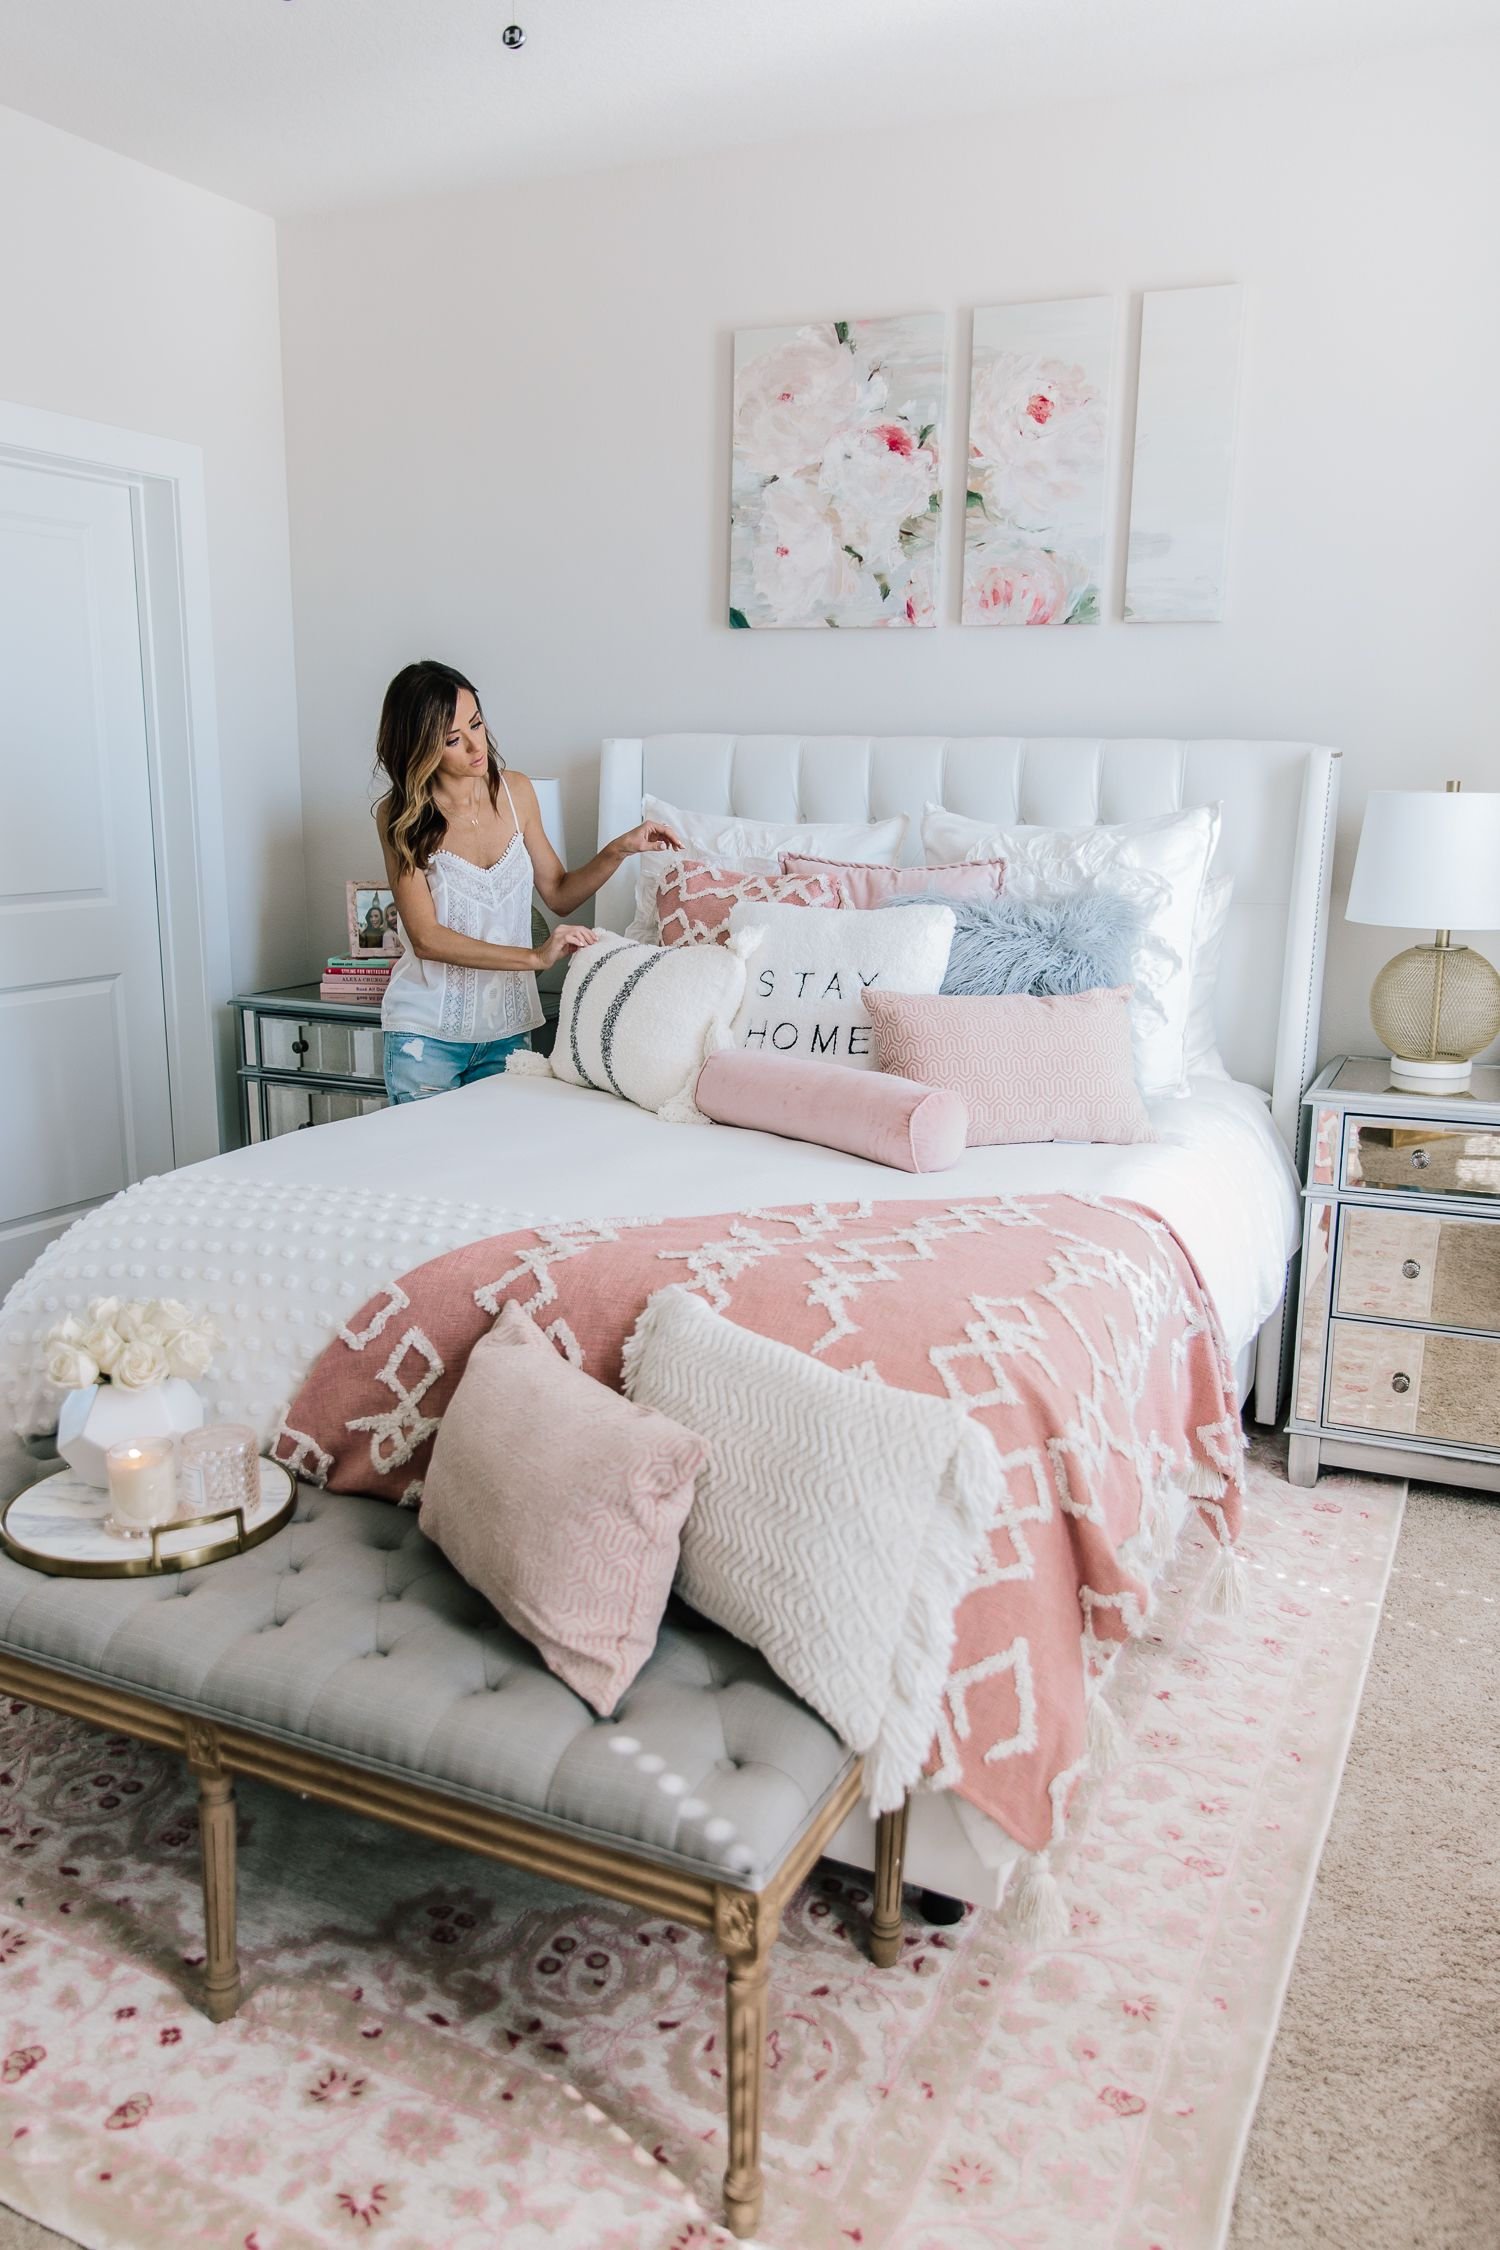 Bedroom Refresh Affordable Buys From Urban Outfitters Decor Home